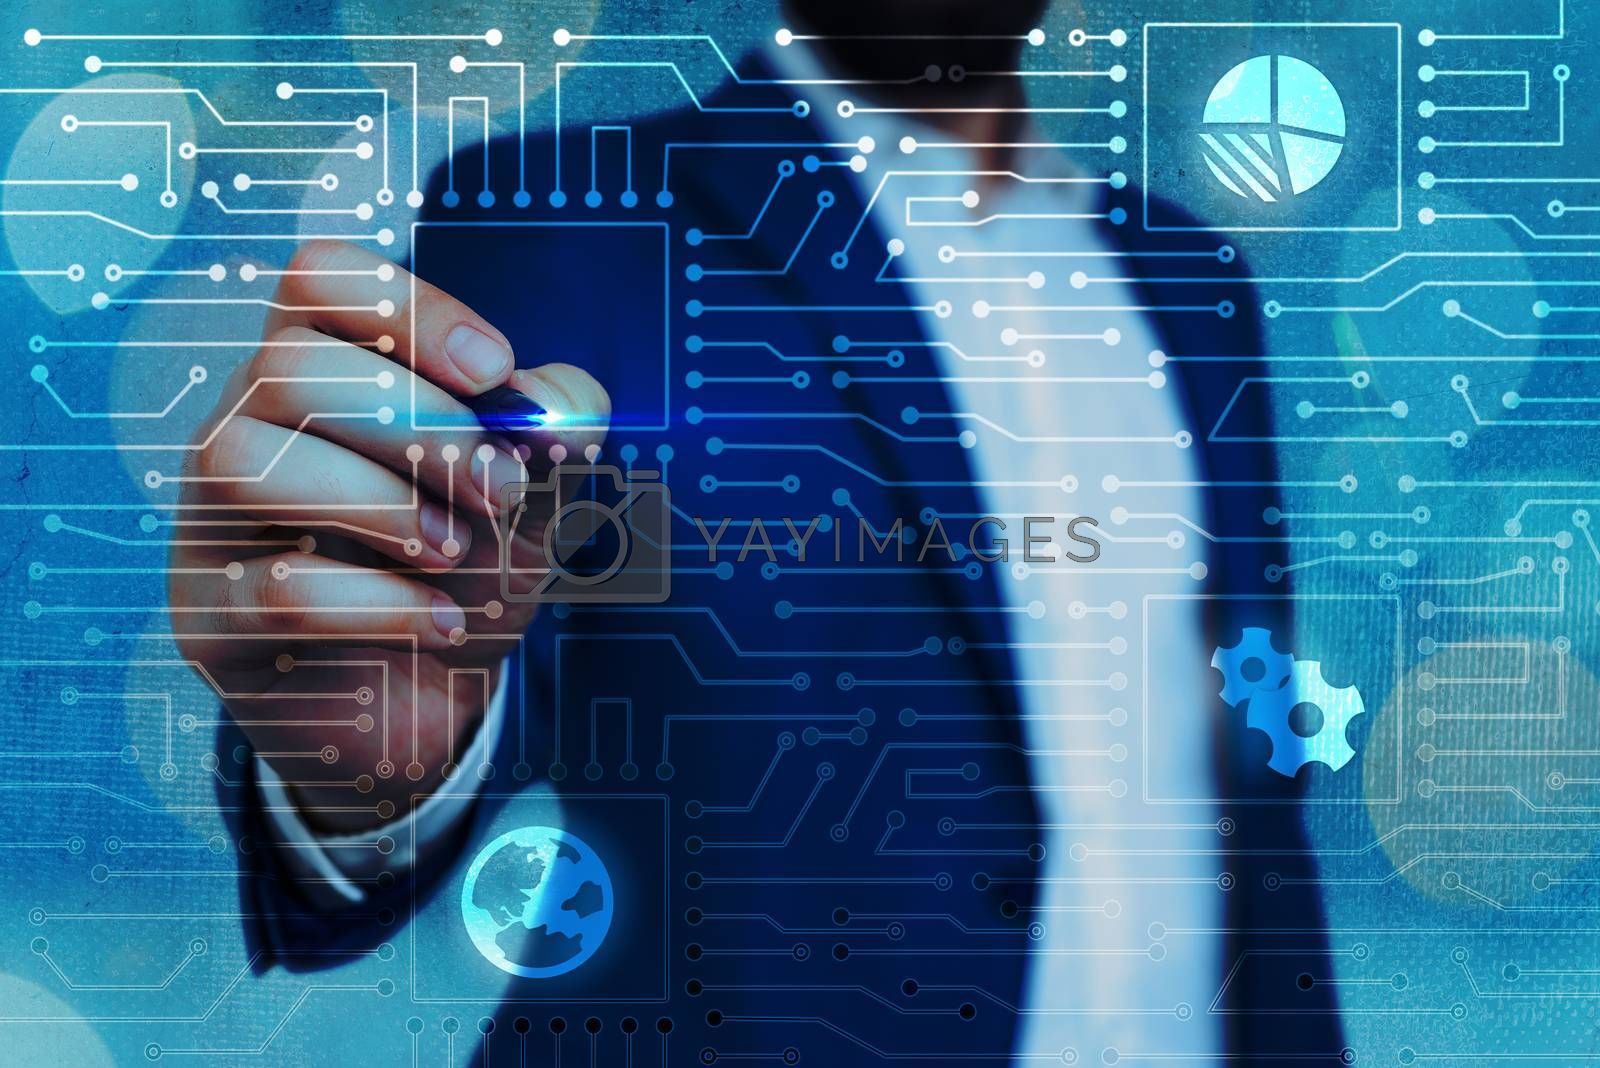 System Administrator Control, Gear Configuration Settings Tools Concept.